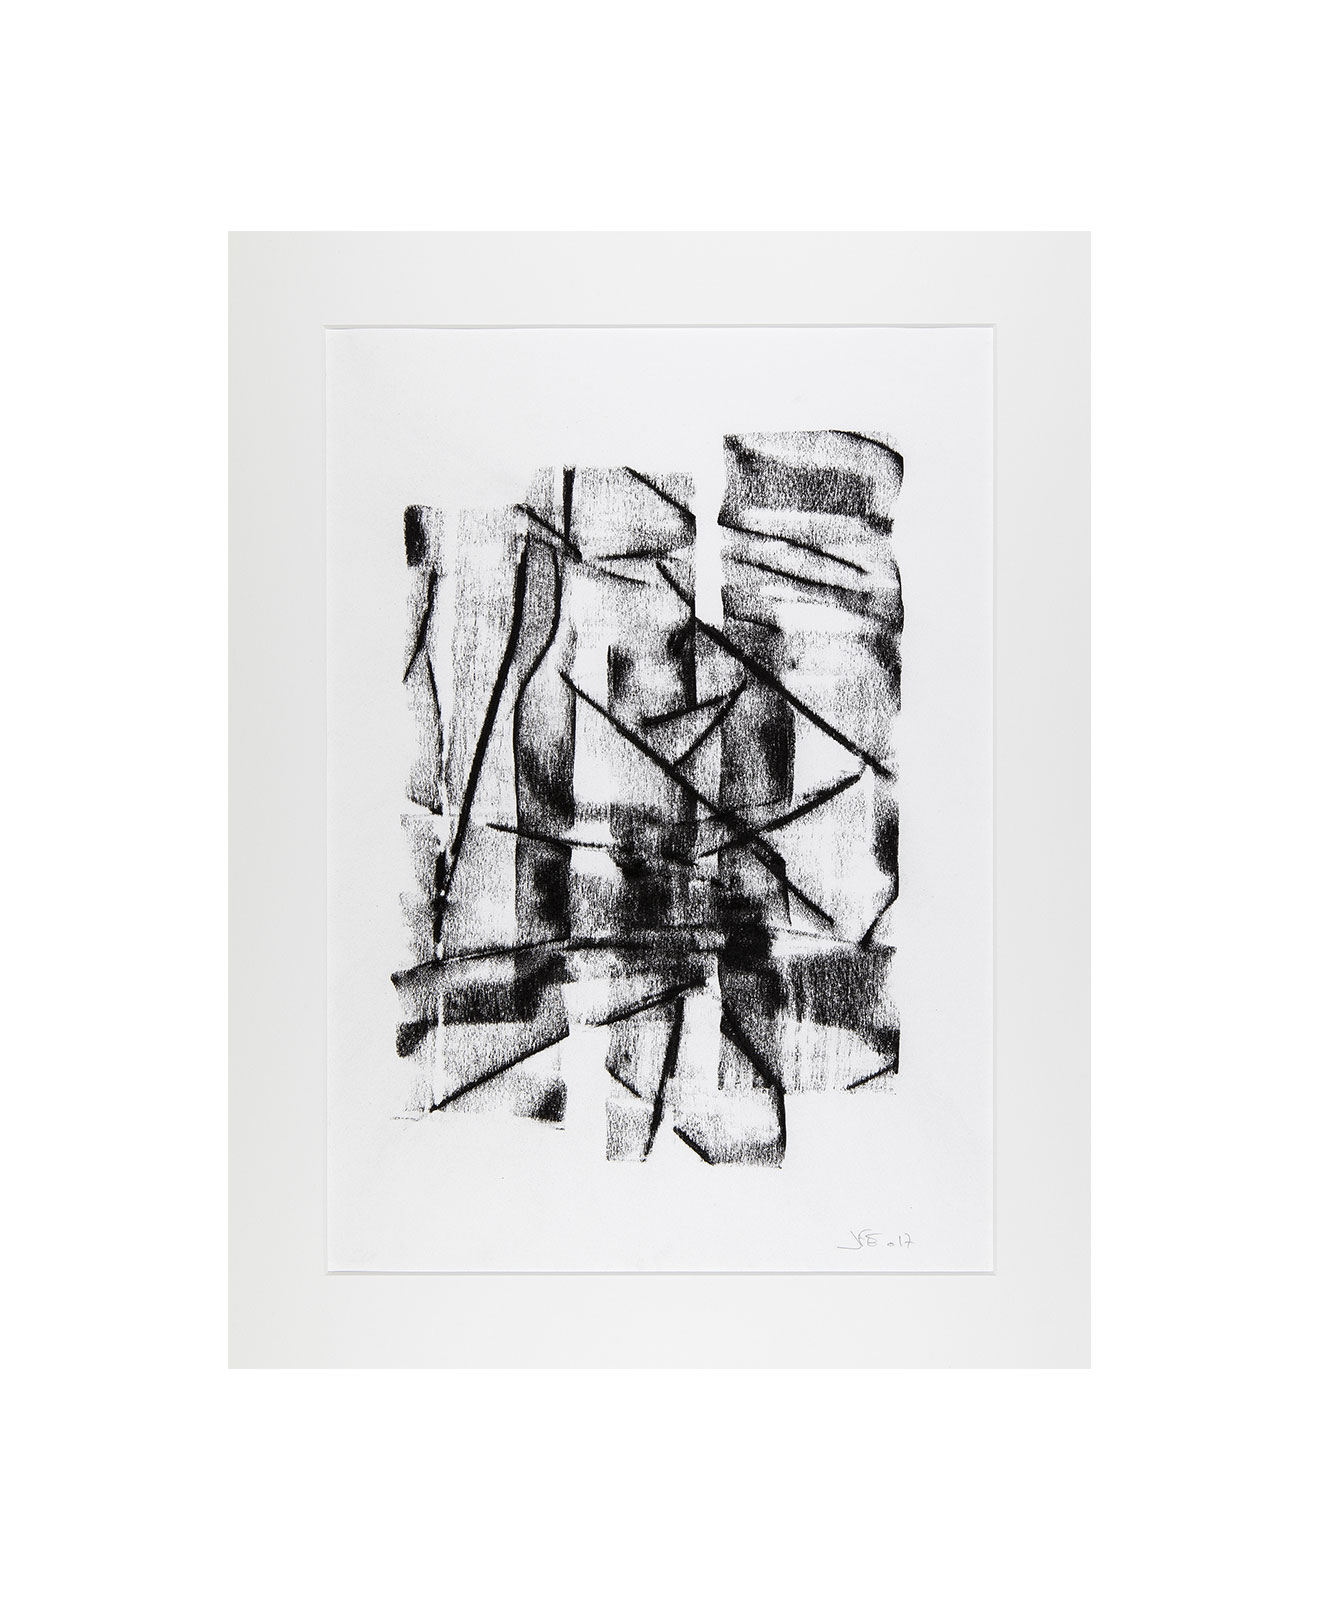 Cha 1.10, Charcoal on paper, black and white artwork, drawing, jf escande, contemporary art